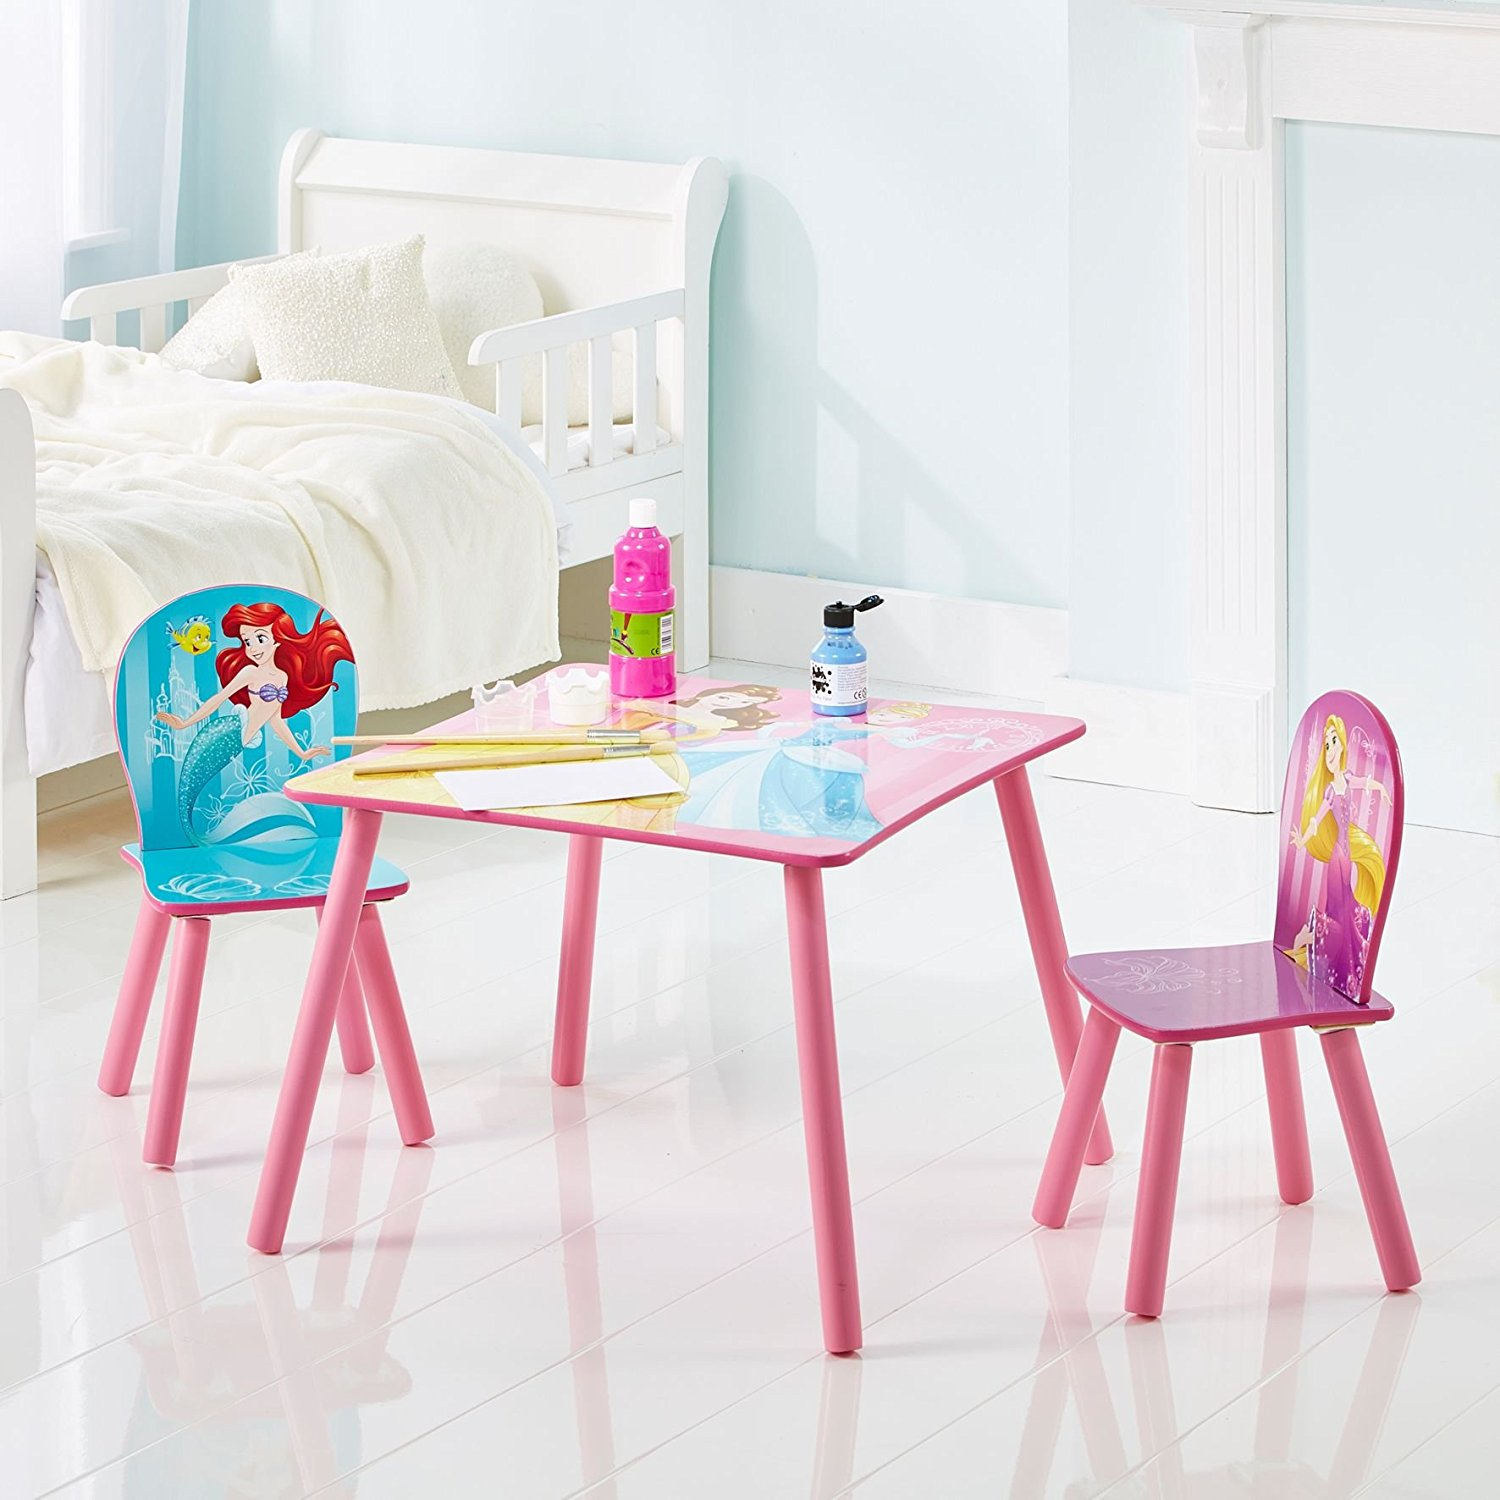 Mesas ni as mesas para ni as princesas disney for Muebles disney